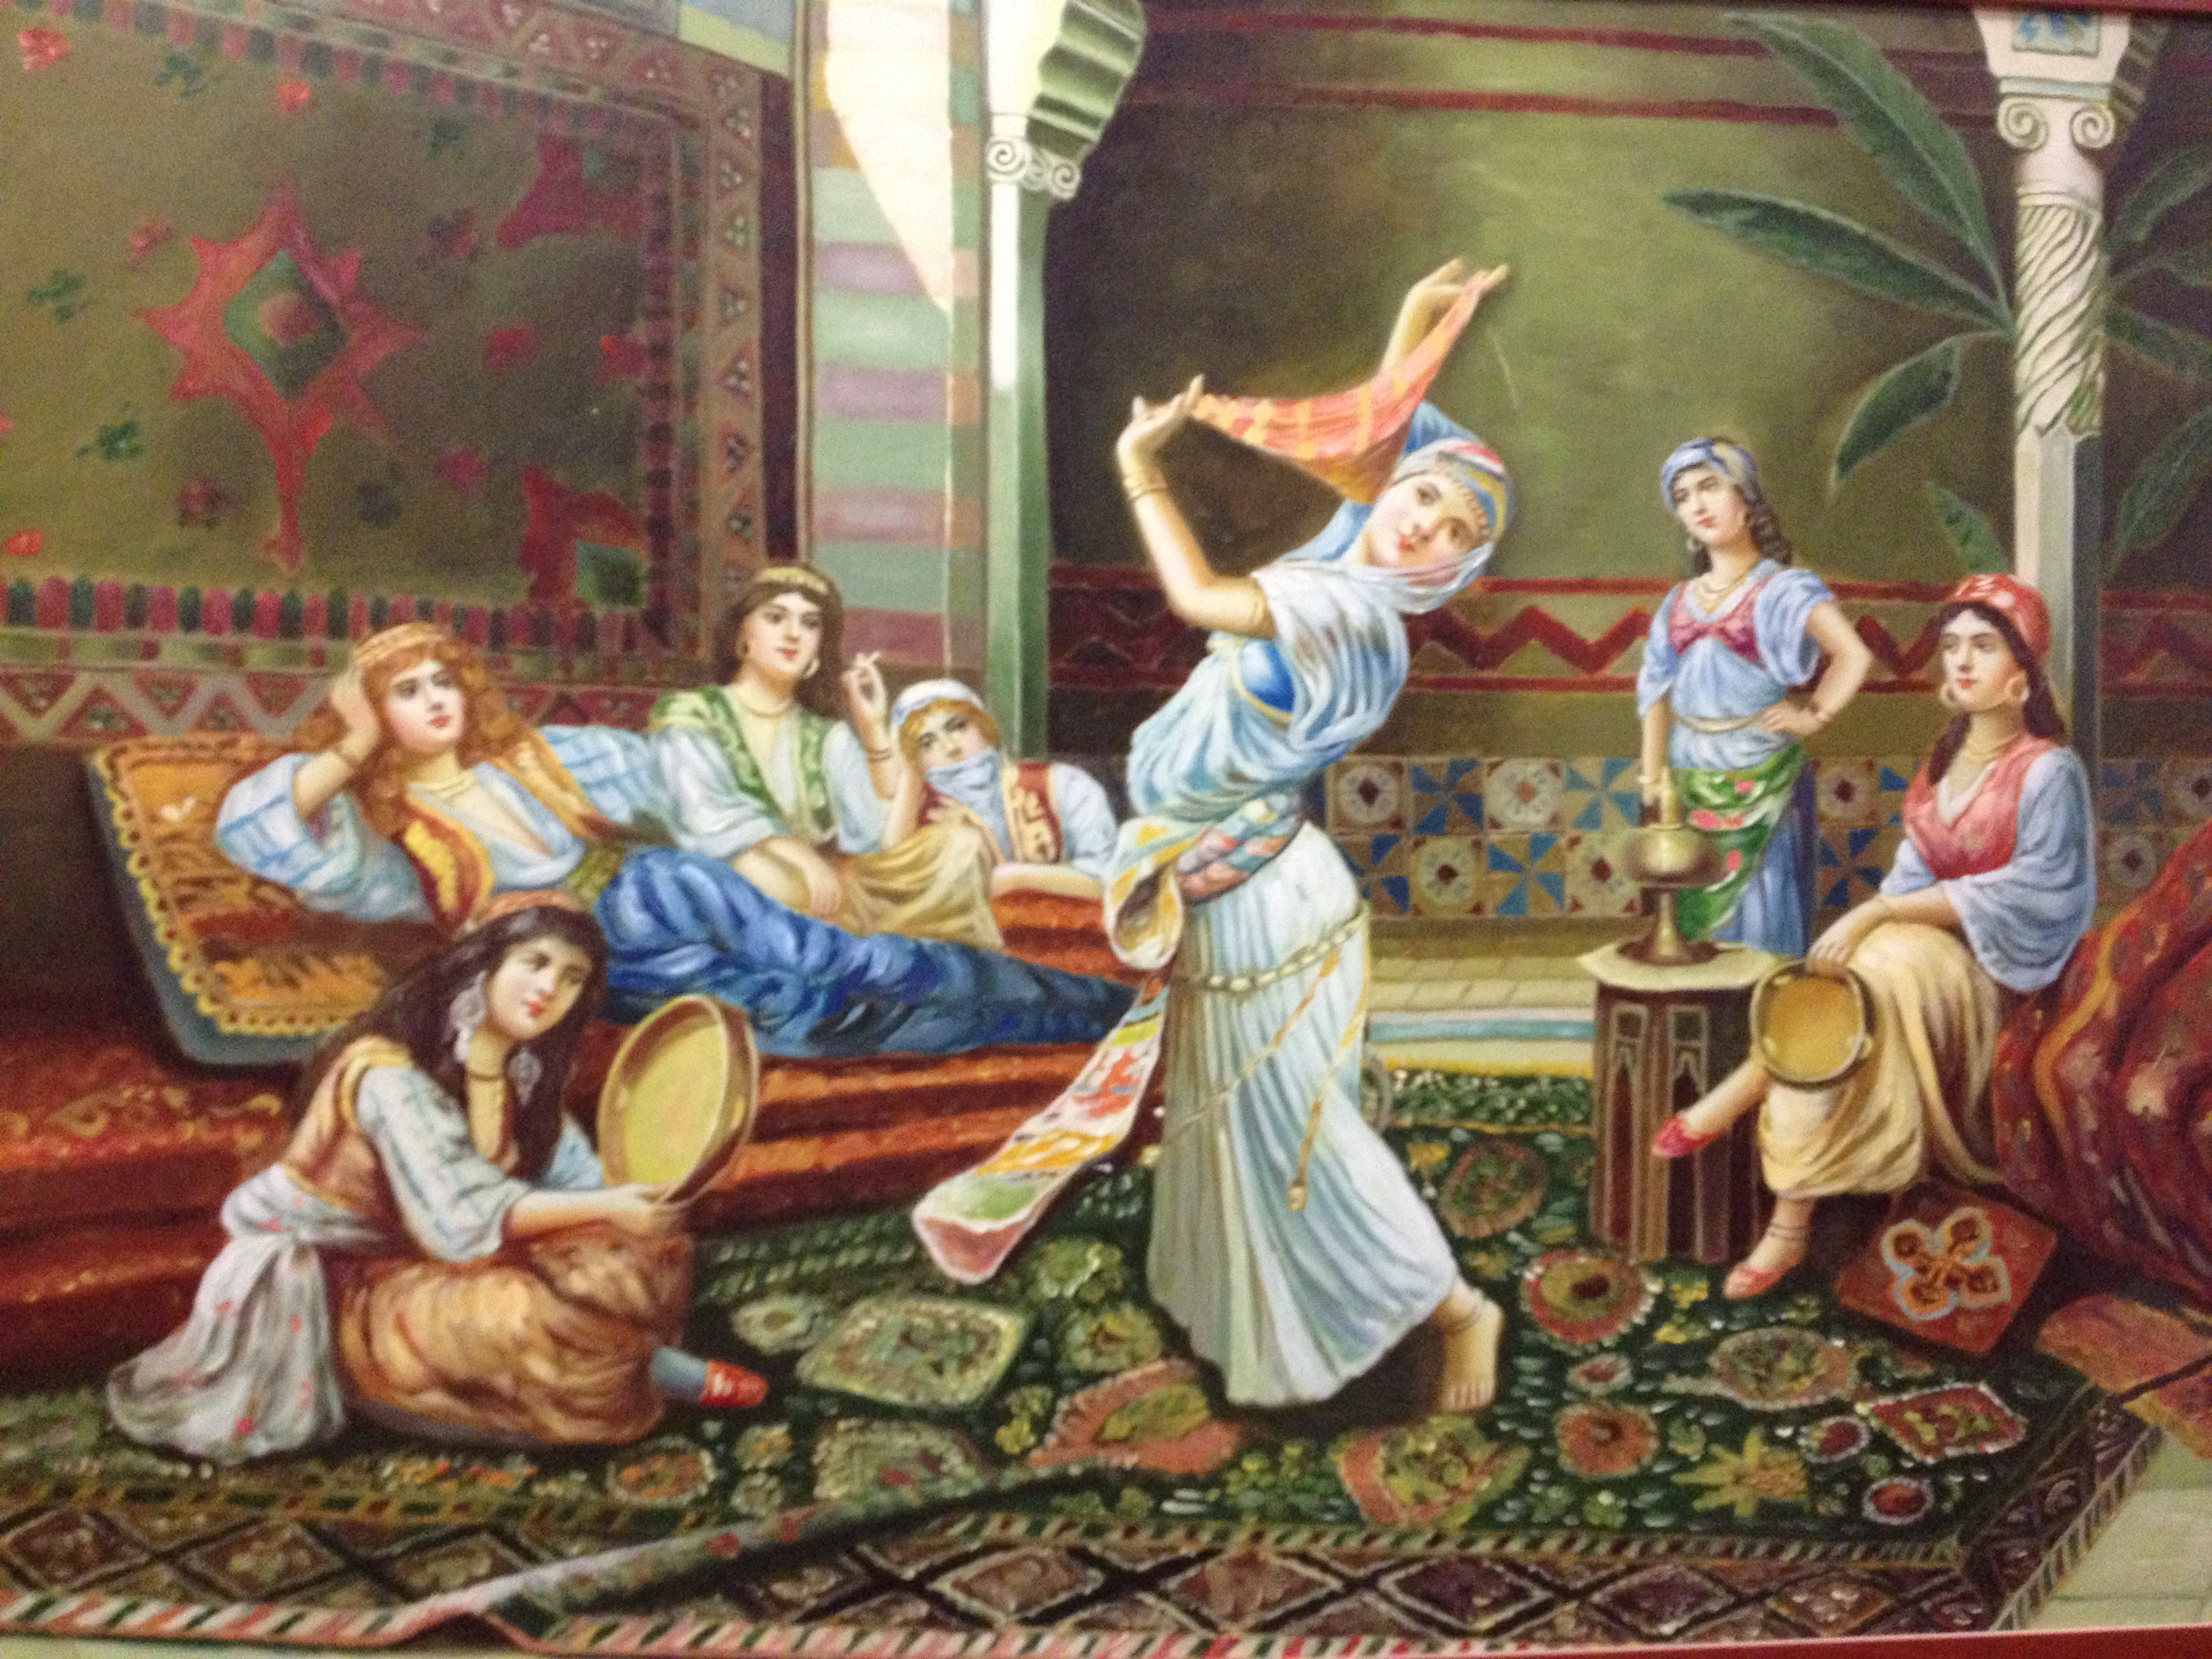 Rules and customs of Turkish harems